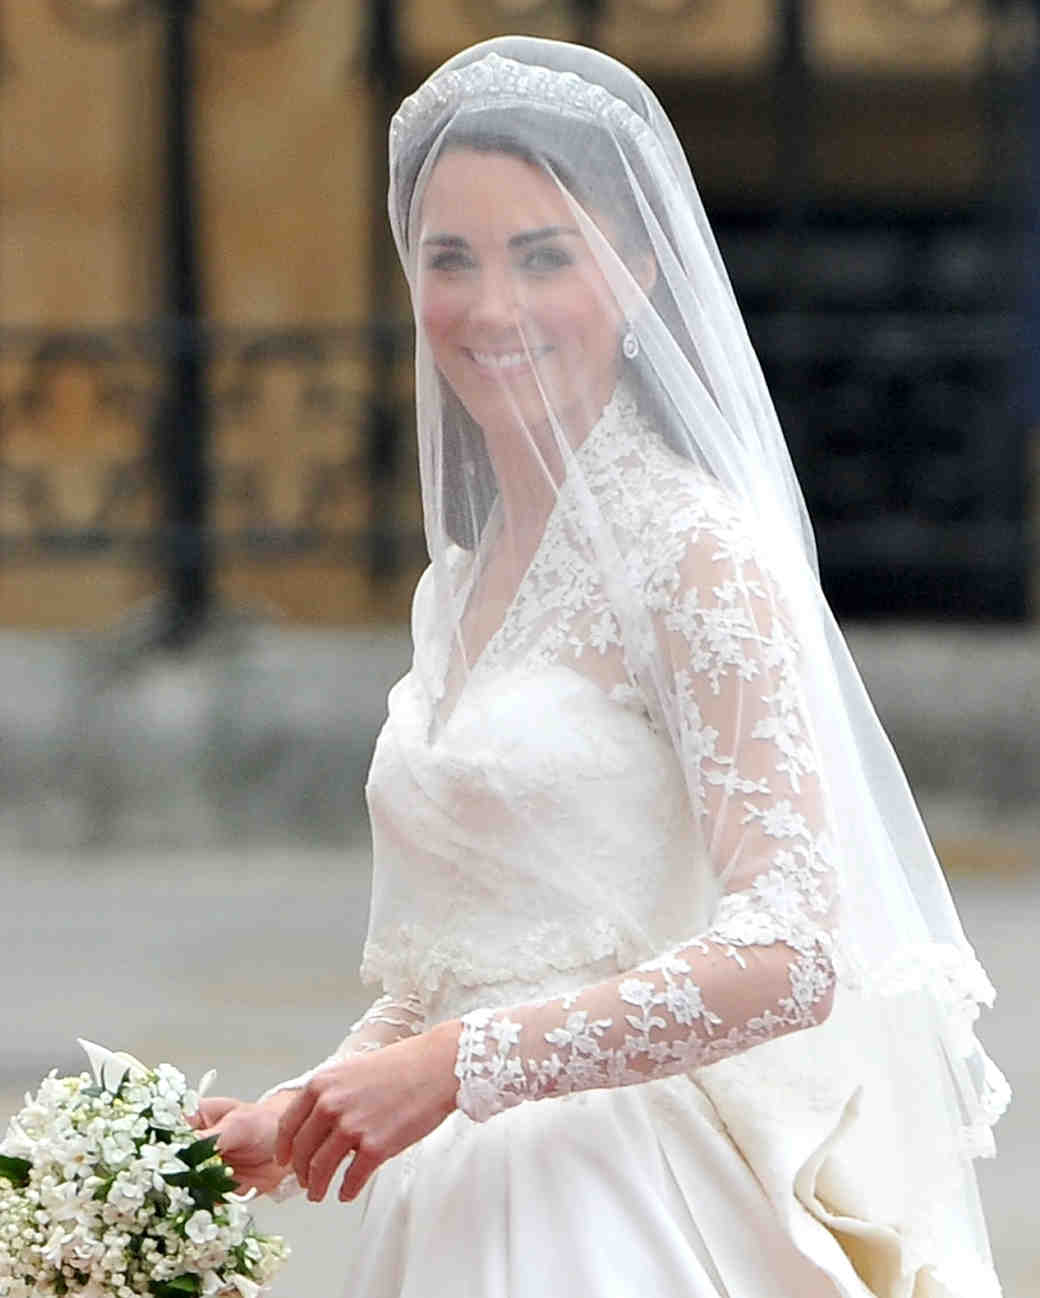 Celebrity Hairstyles For Weddings: 26 Celebrity Brides Who Wore Unforgettable Veils